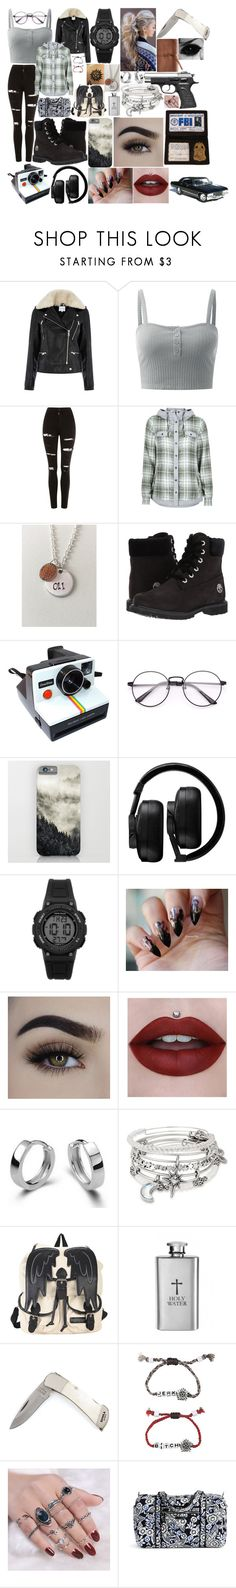 """""""Supernatural Sister"""" by boredom-is-my-motivation ❤ liked on Polyvore featuring Warehouse, Topshop, Marmot, Timberland, Polaroid, Master & Dynamic, Armitron, Alex and Ani, Hot Topic and Vera Bradley"""